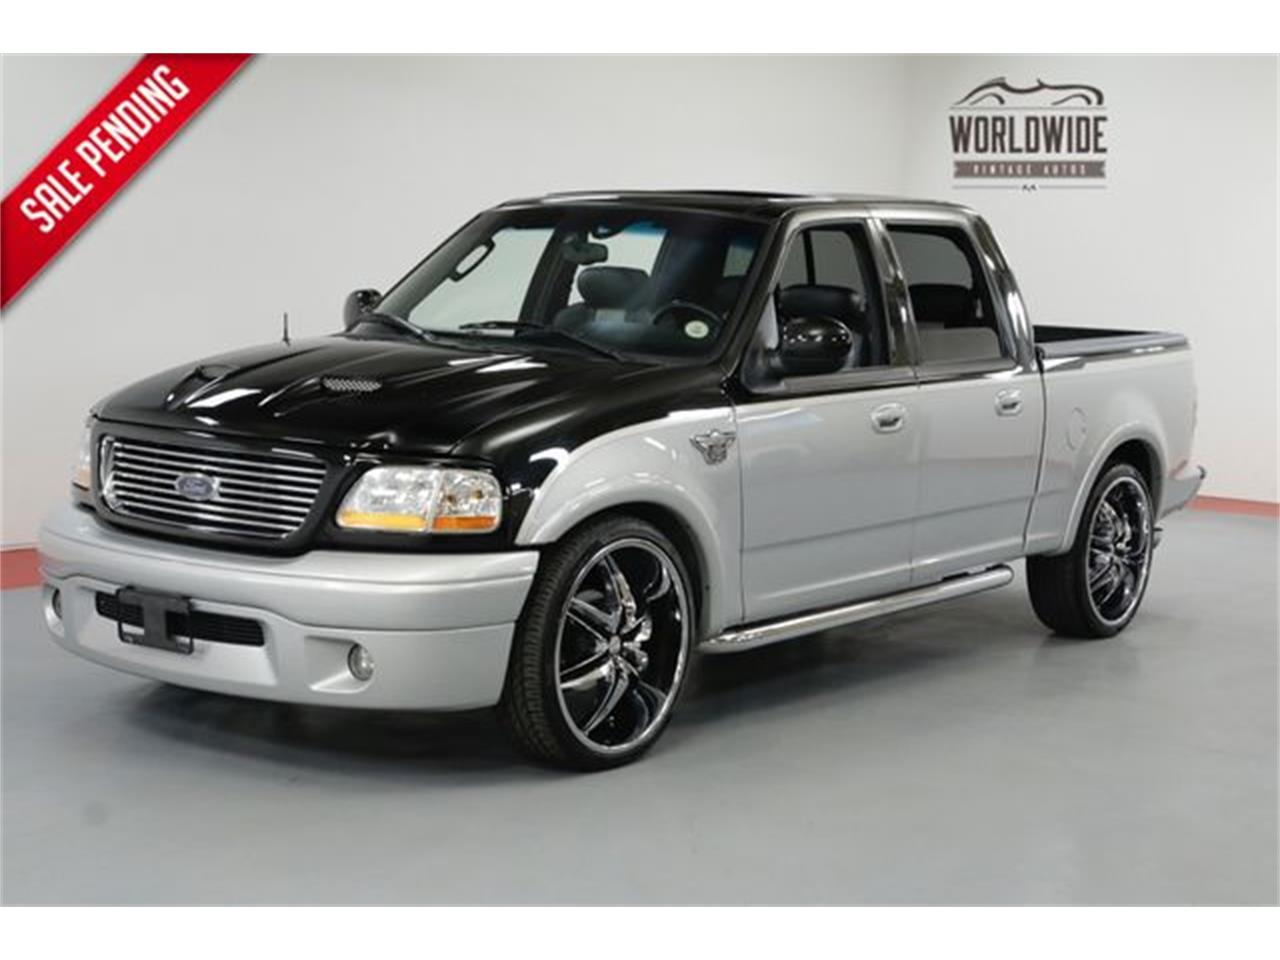 2003 Ford F150 For Sale >> For Sale 2003 Ford F150 In Denver Colorado